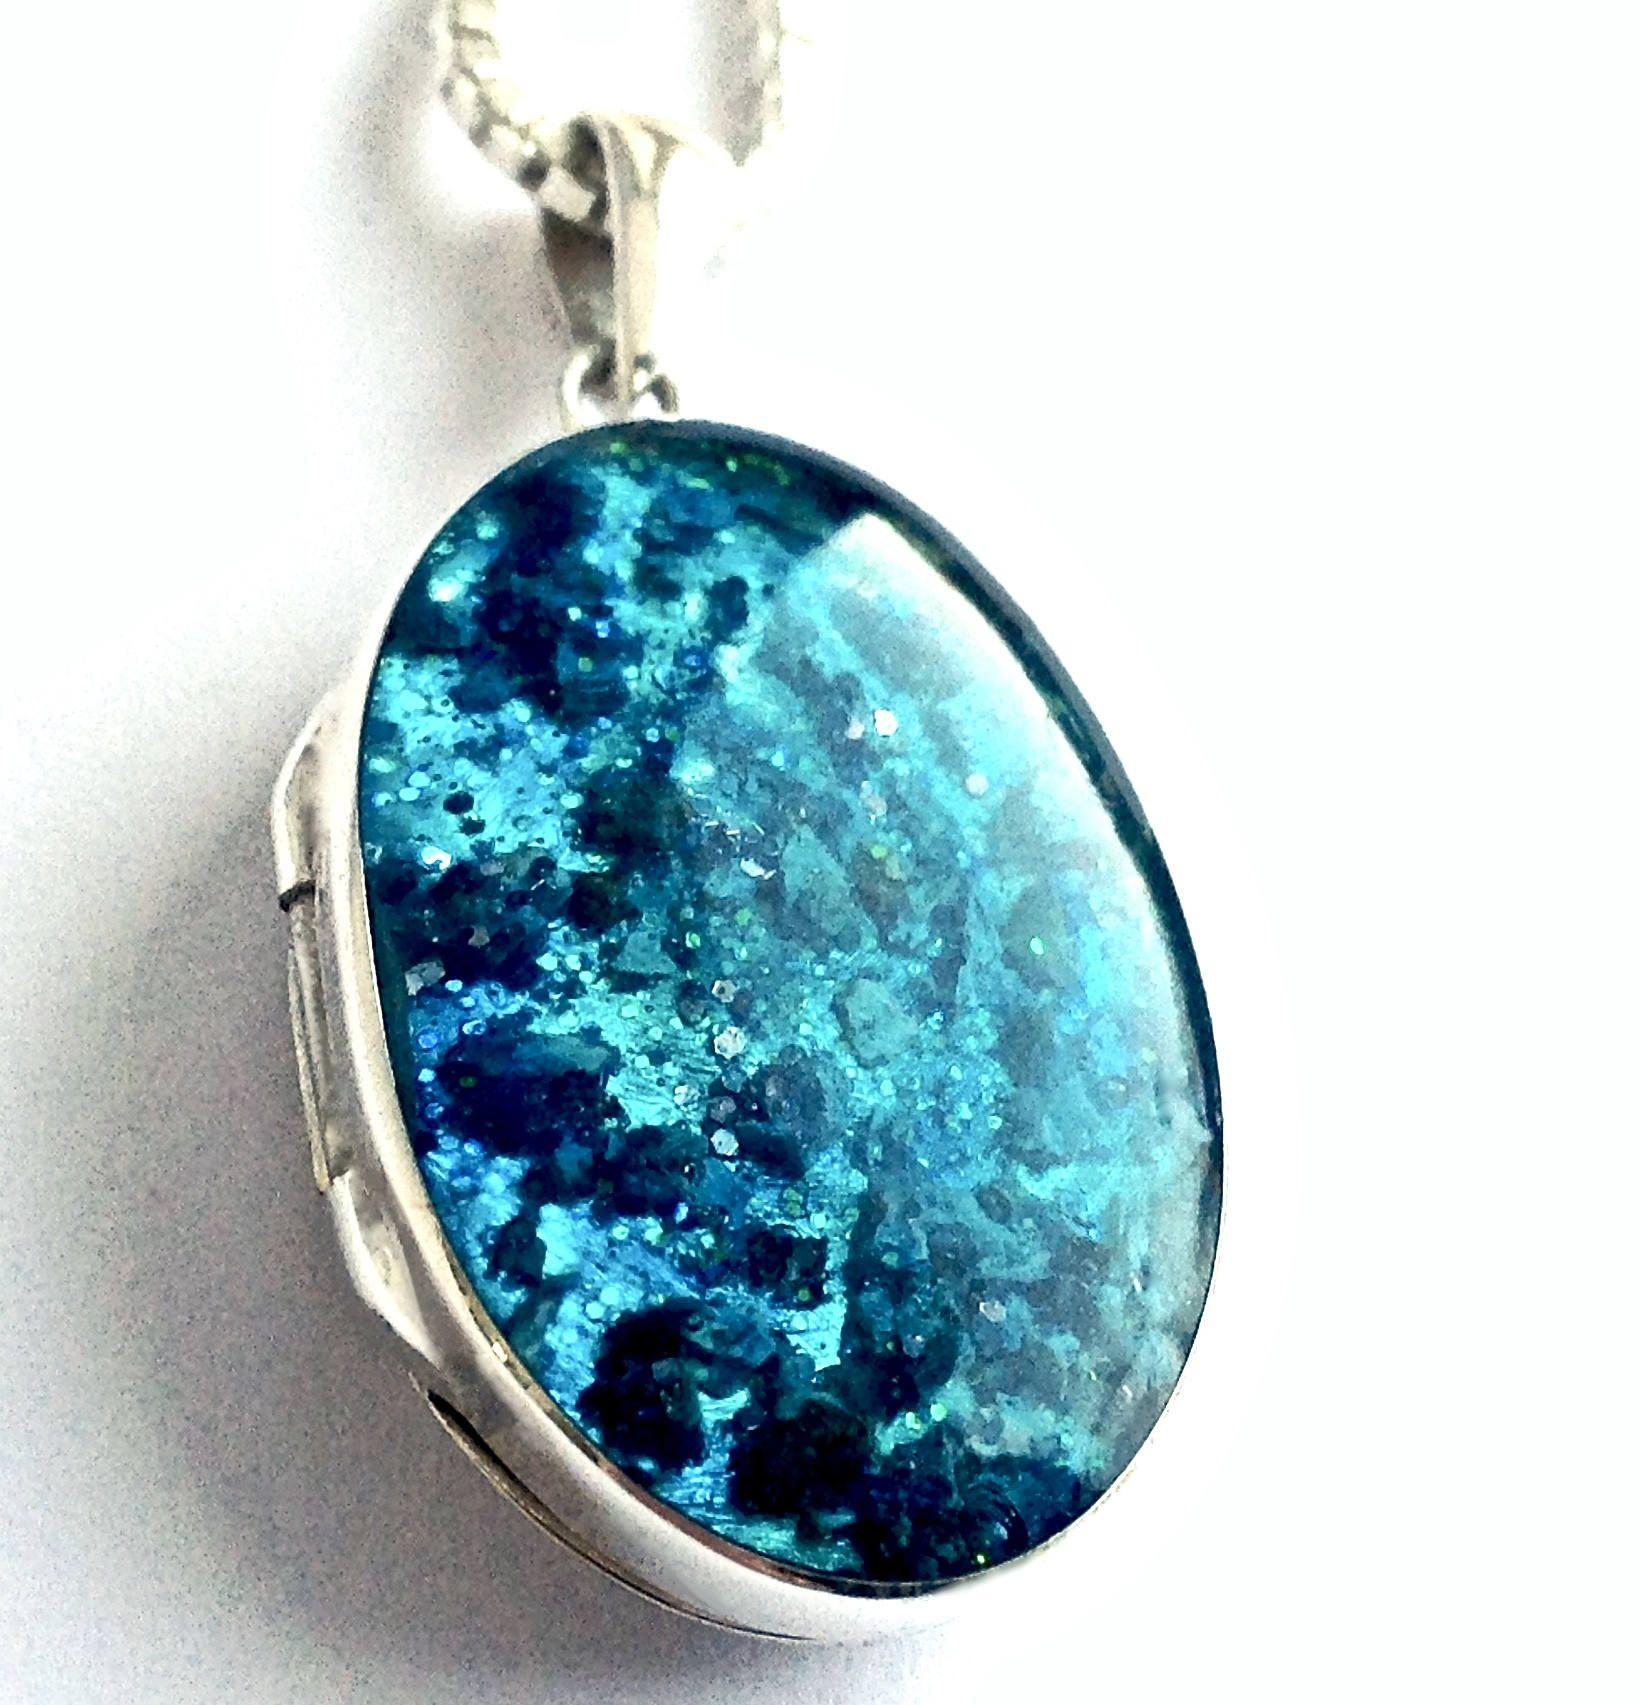 22+ Ashes into jewelry near me ideas